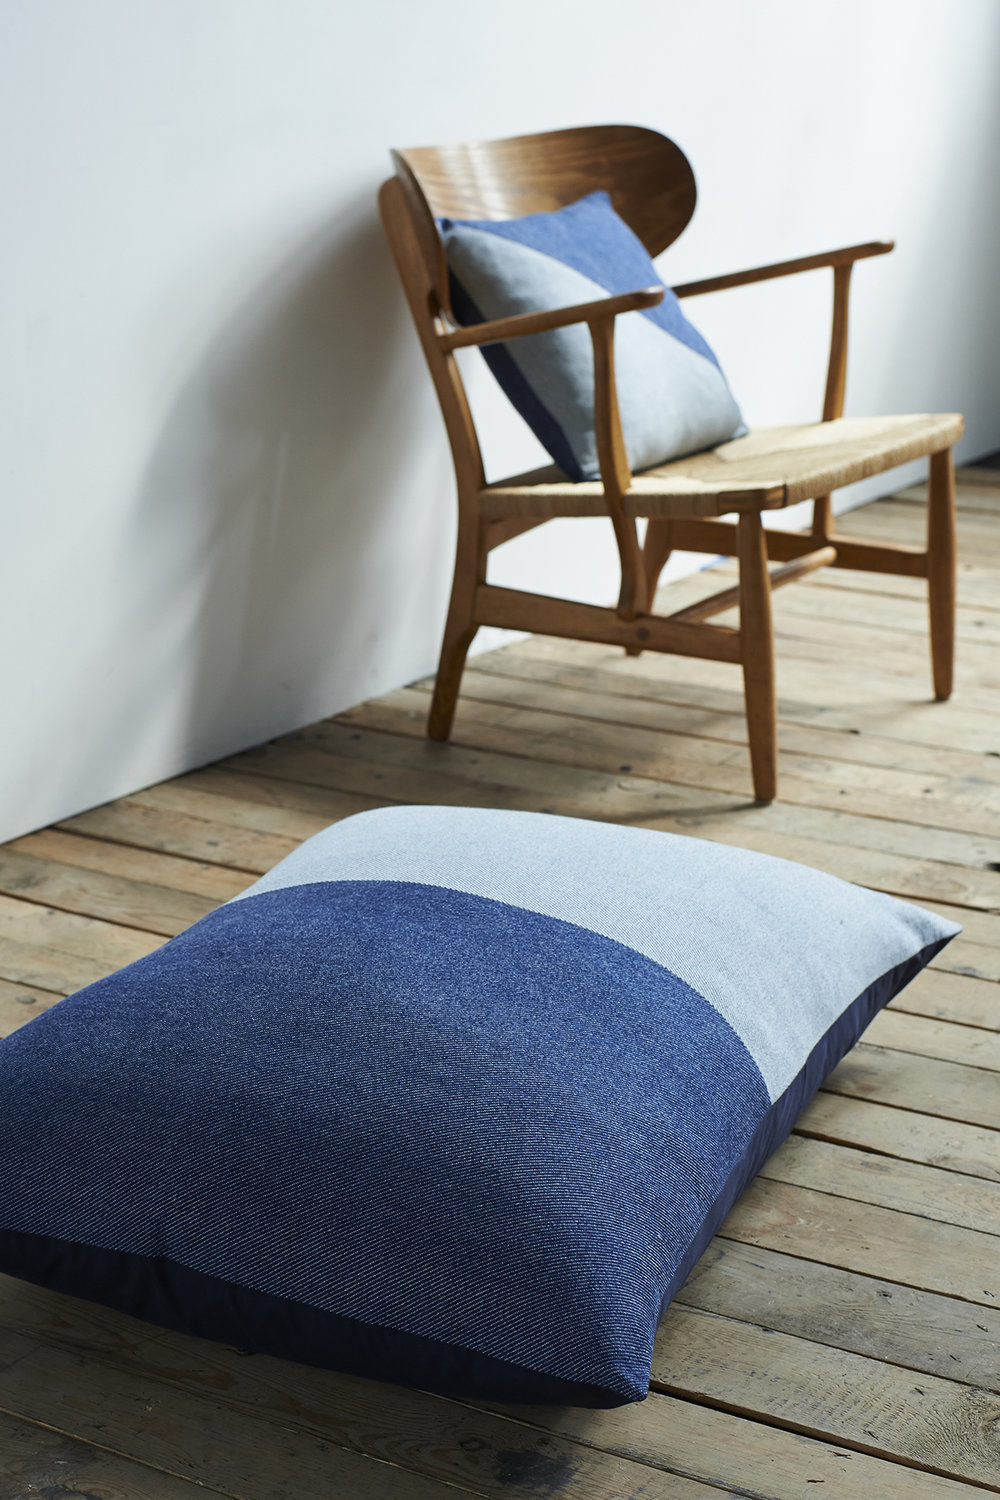 'Lane x London Cloth' Cotton Floor Cushion and Cotton Cushion - Triangle Context LR.jpg